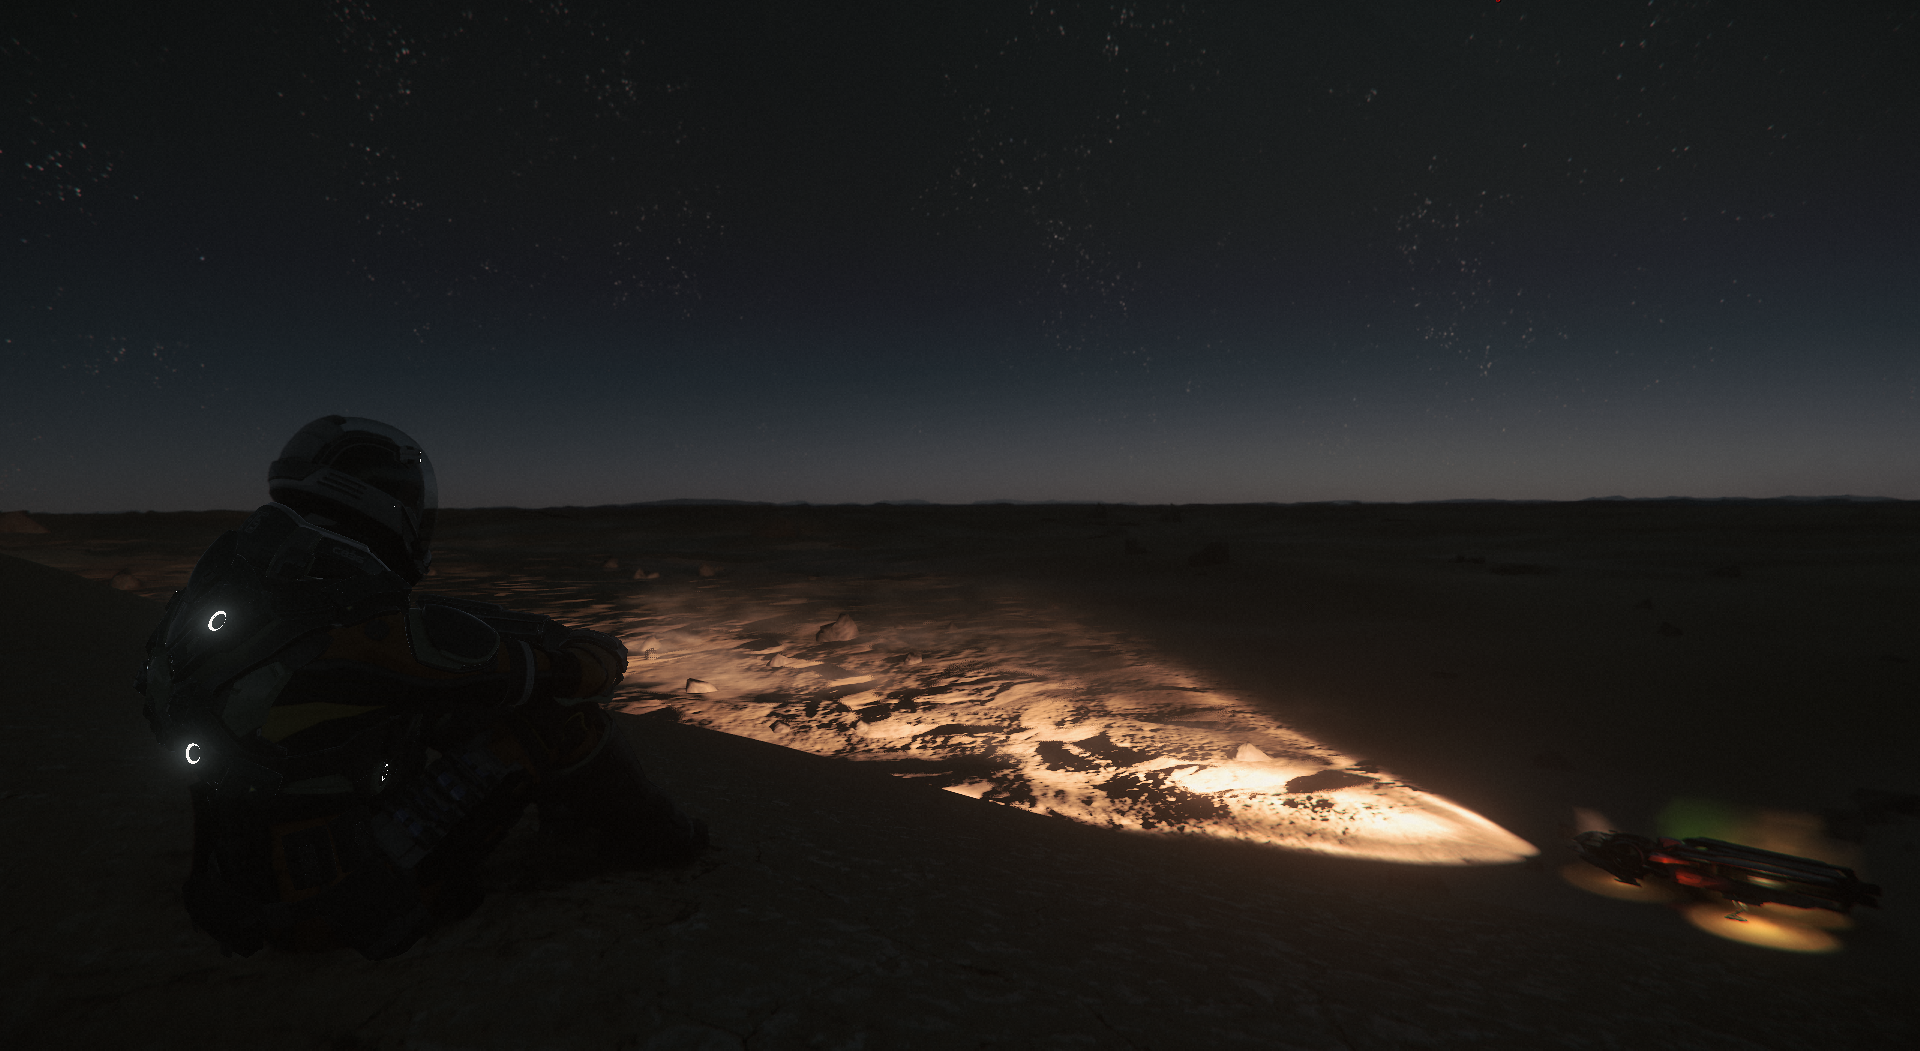 Silient_night_on_Daymar.png